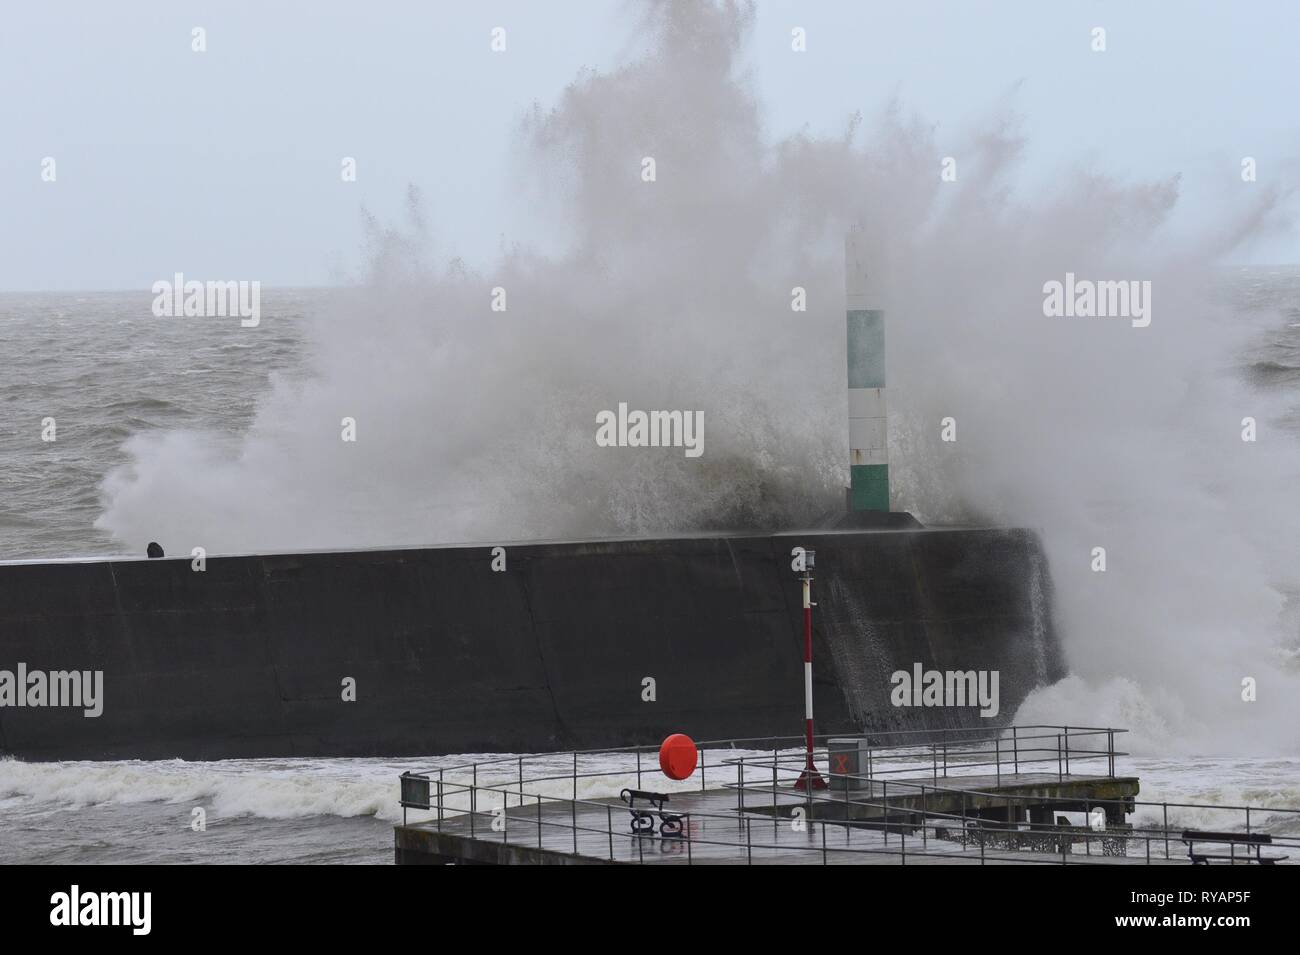 Aberystwyth Ceredigion Wales UK, Wednesday 13 March 2019. UK Weather: Storm Gareth, the latest named storm of the season, hits the seafront in Aberystwyth. The gale force winds of Storm Gareth are expected to bring damaging 70mph gusts to exposed Irish Sea coasts today. photo Credit: Keith Morris/Alamy Live News - Stock Image